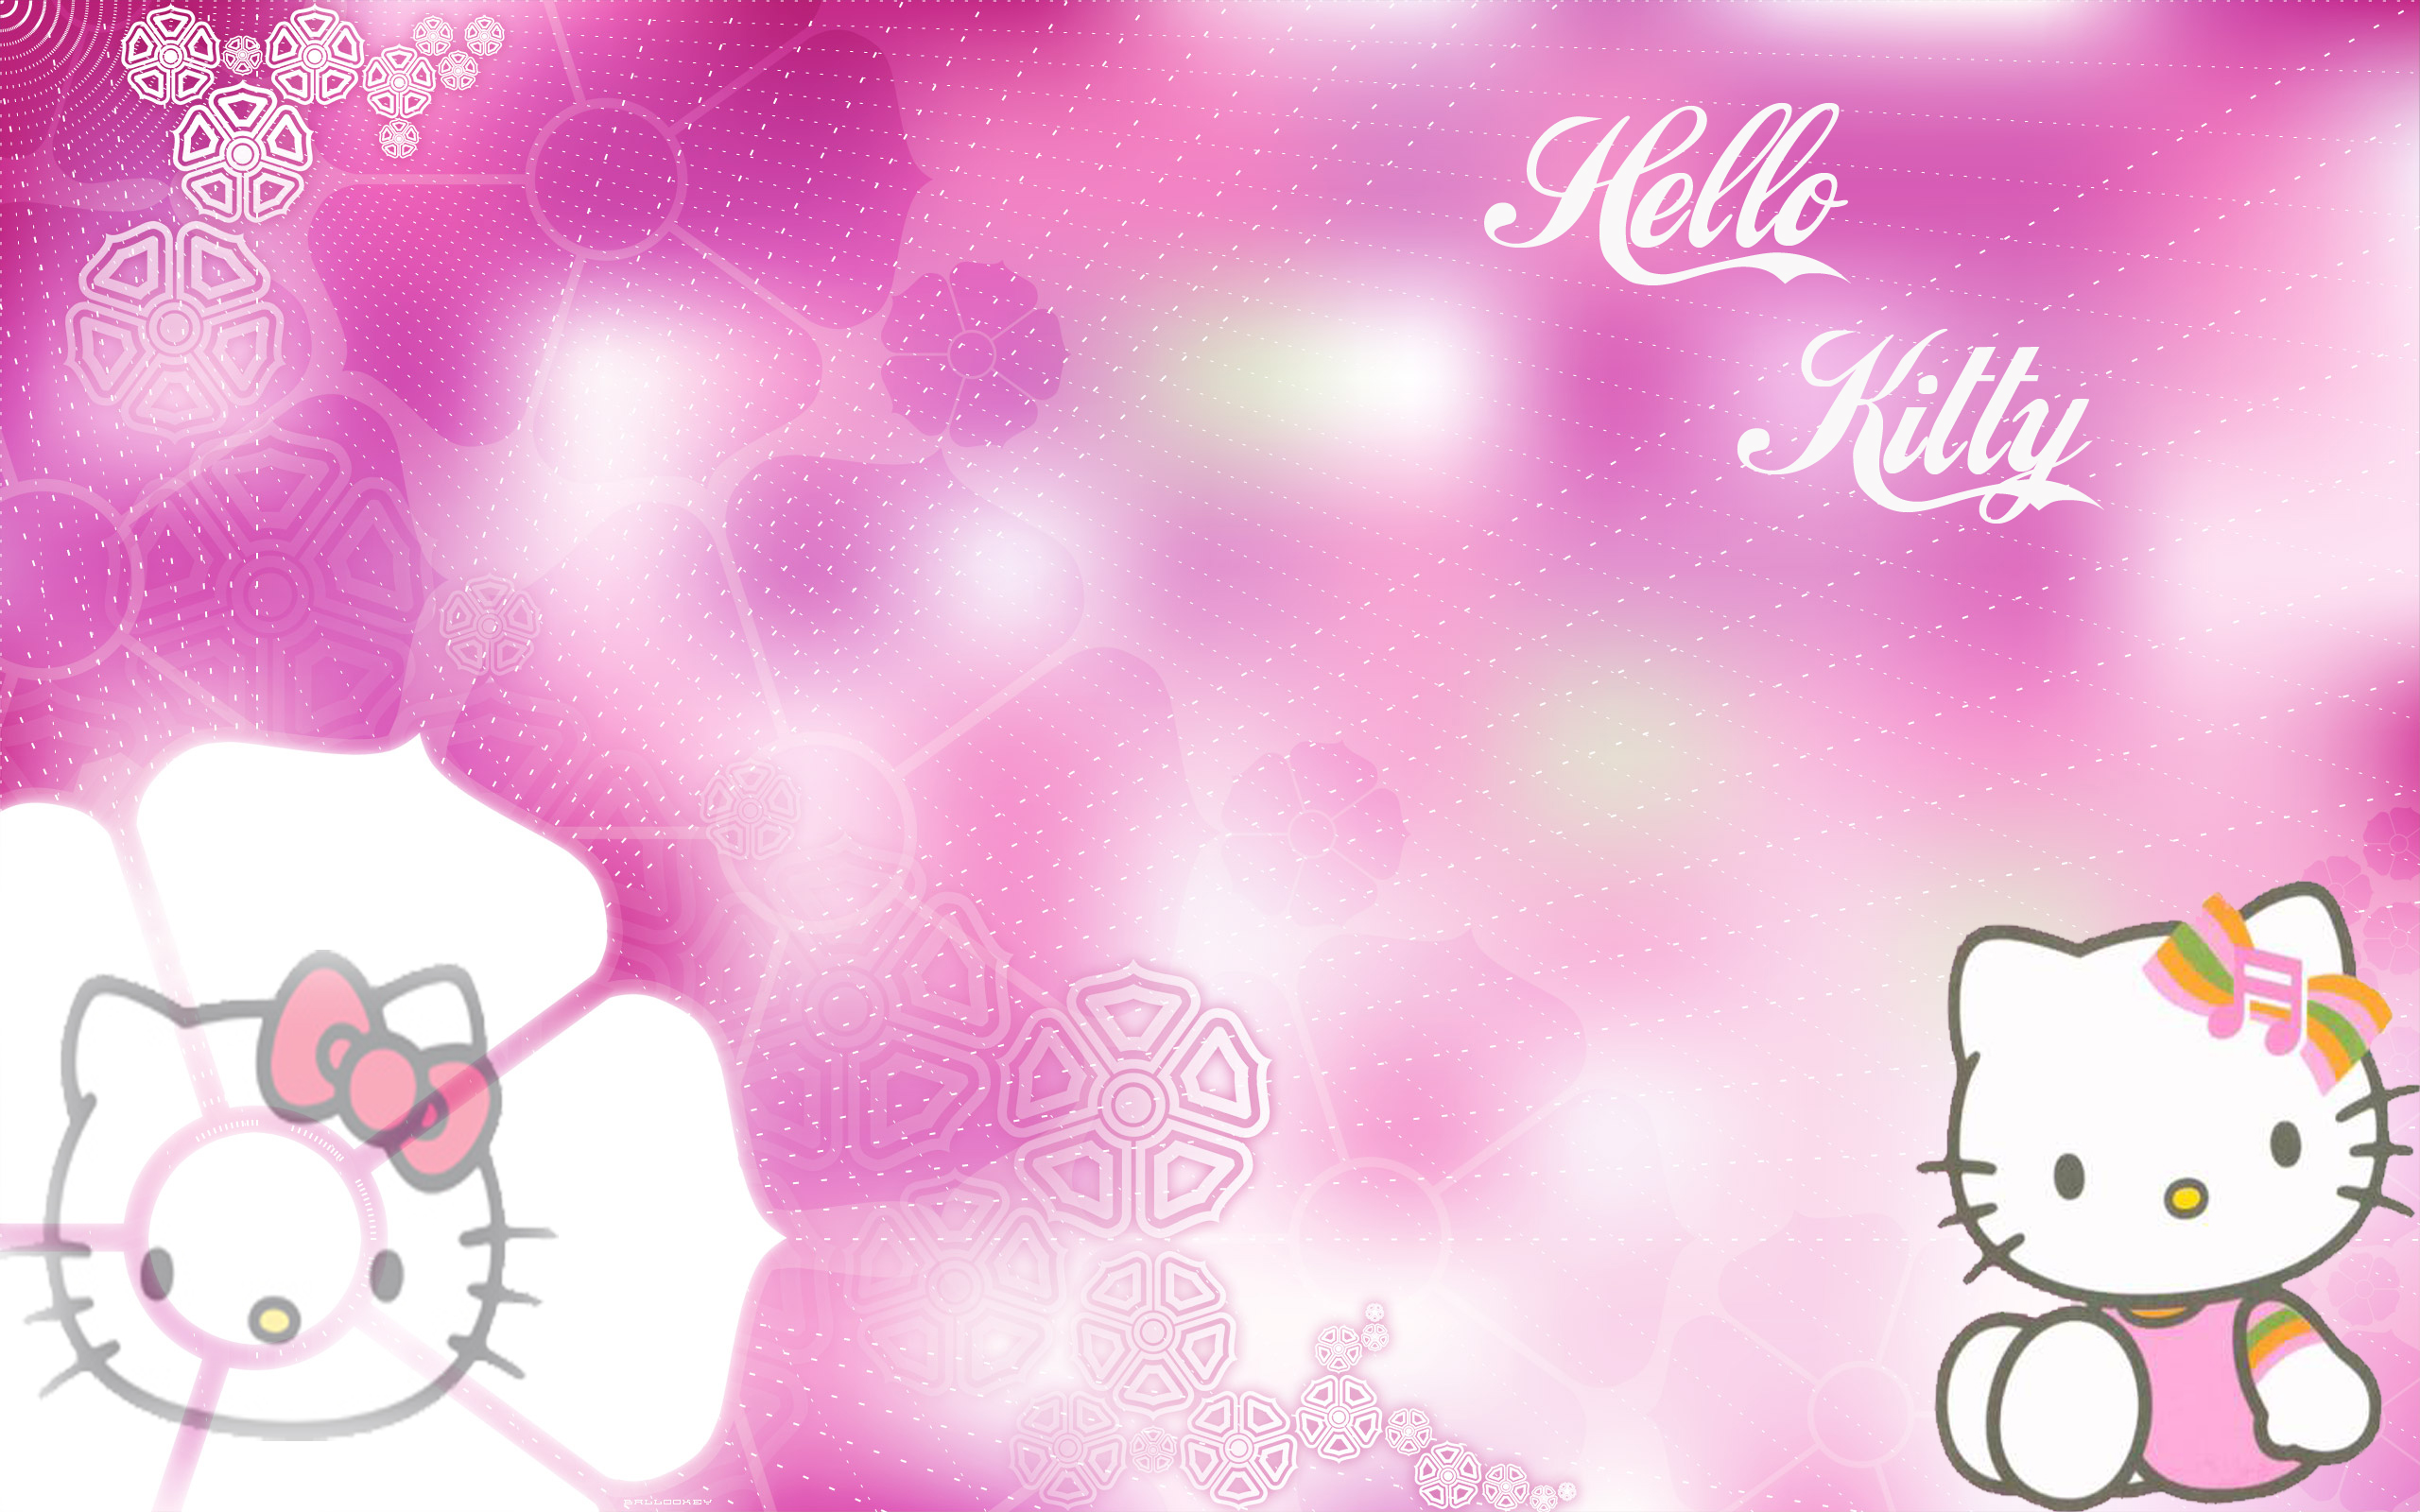 Hello Kitty Cute Image Background Full HD 1080p Best HD 2560x1600